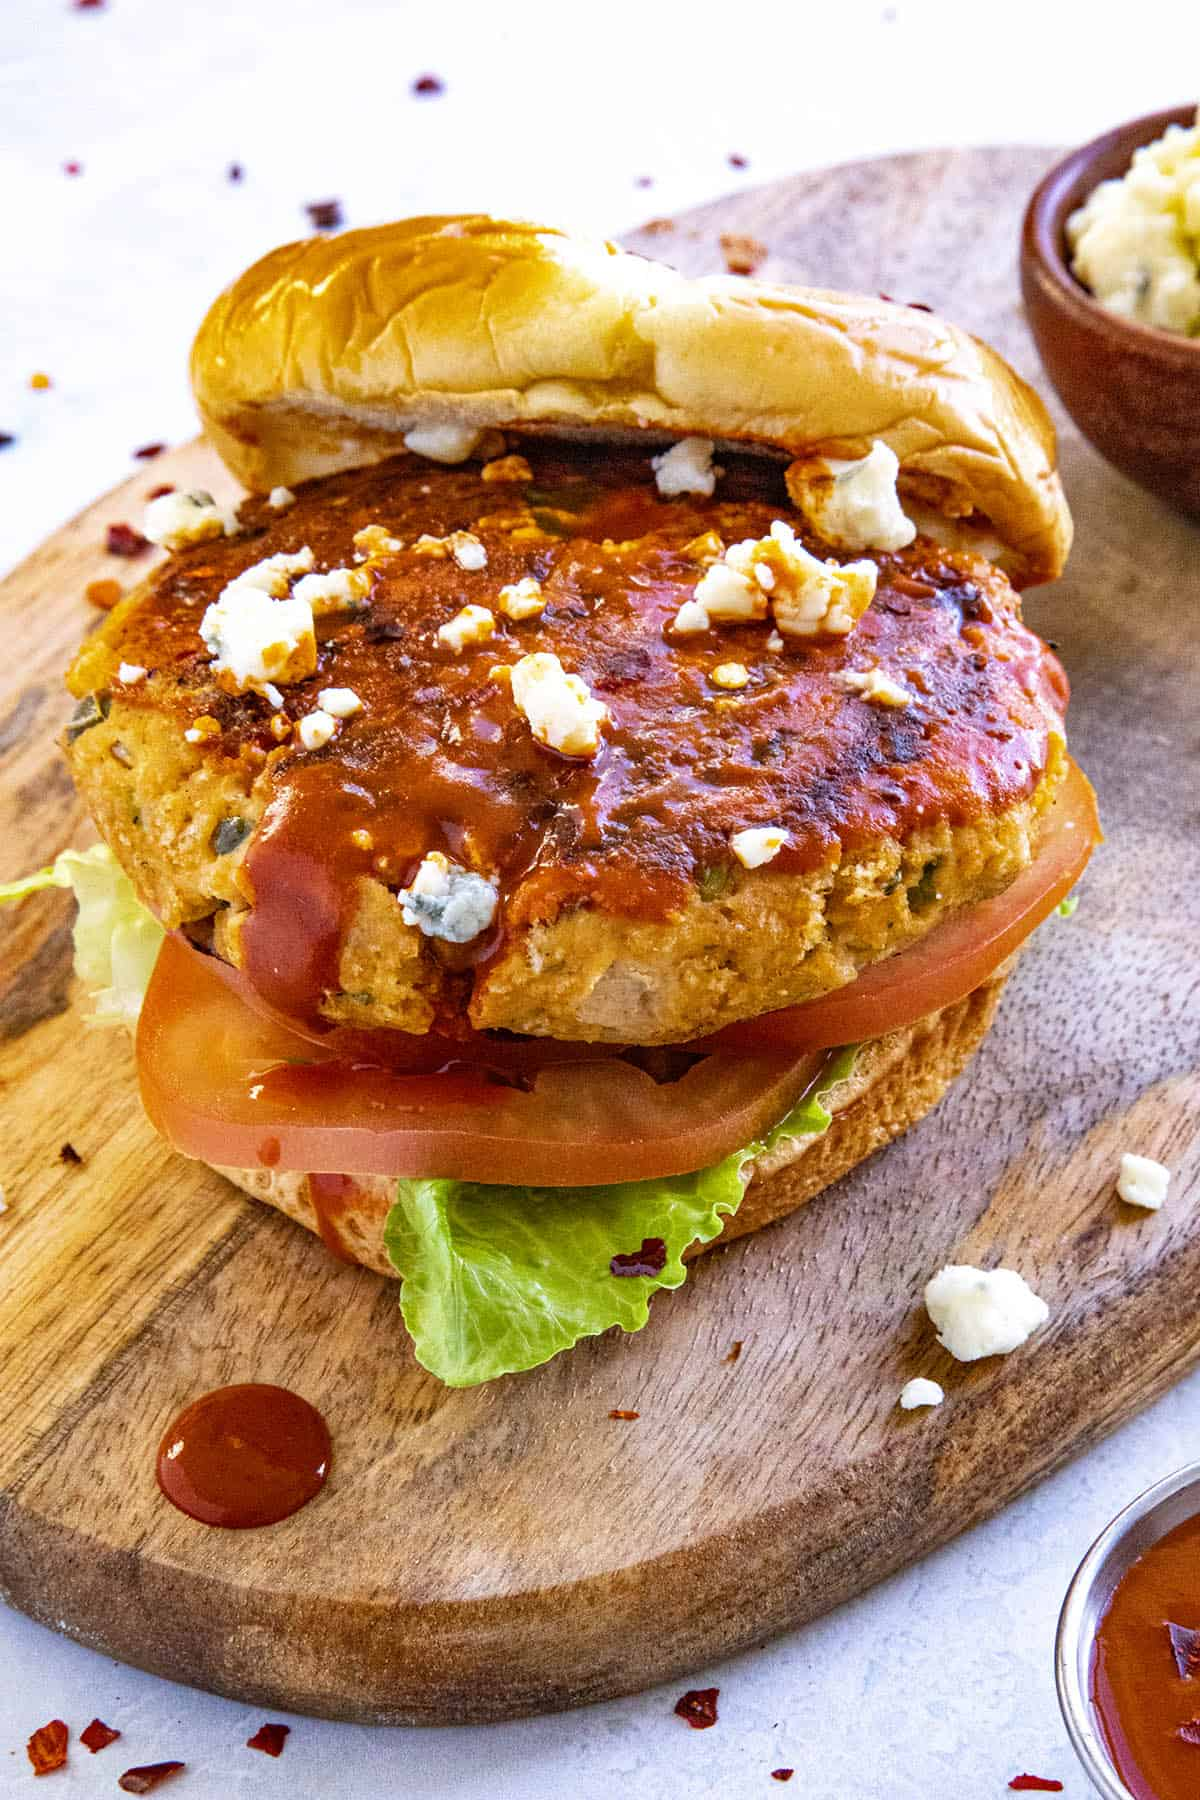 A Buffalo chicken burger with lots of crumbly blue cheese